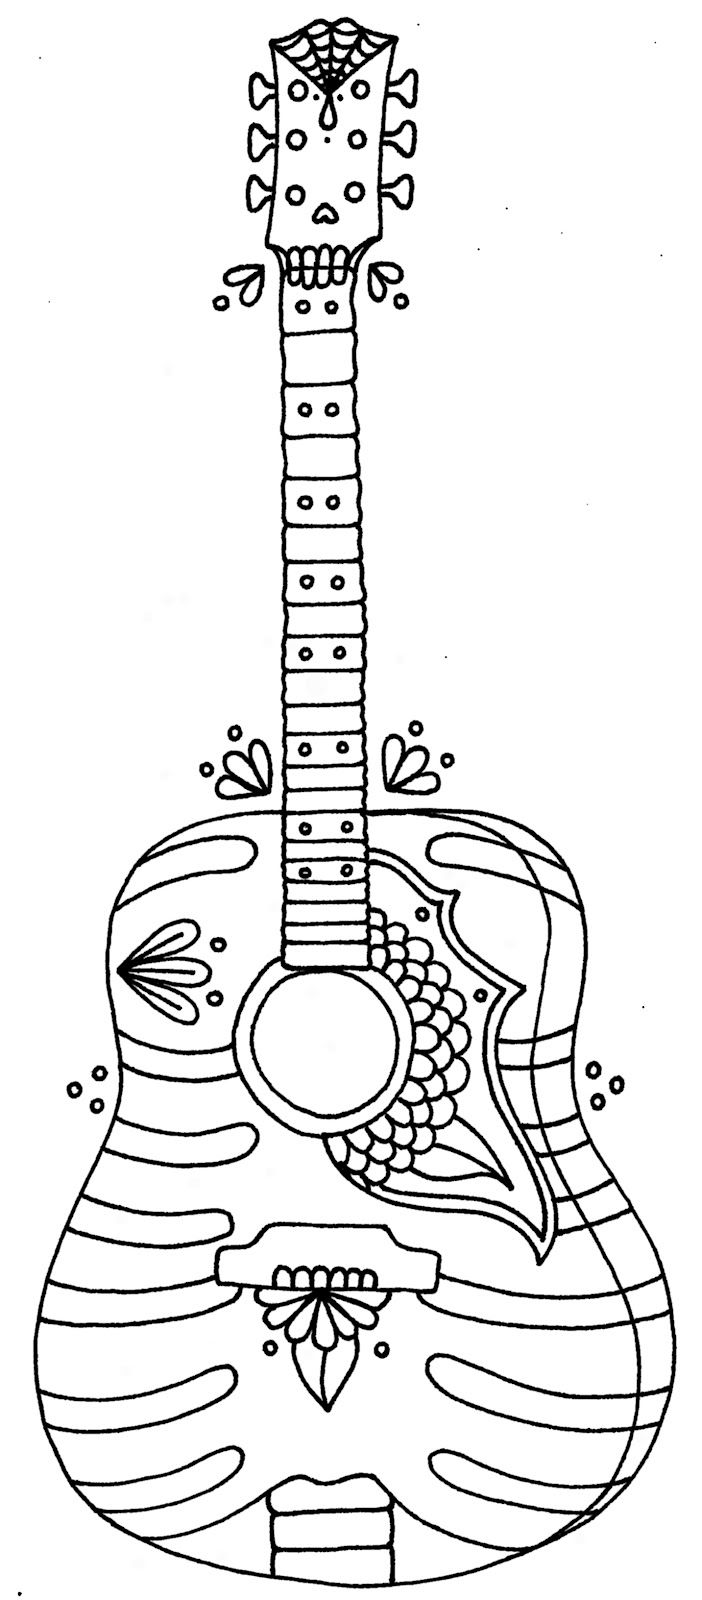 colouring pages van : Guitar Coloring Pages 9